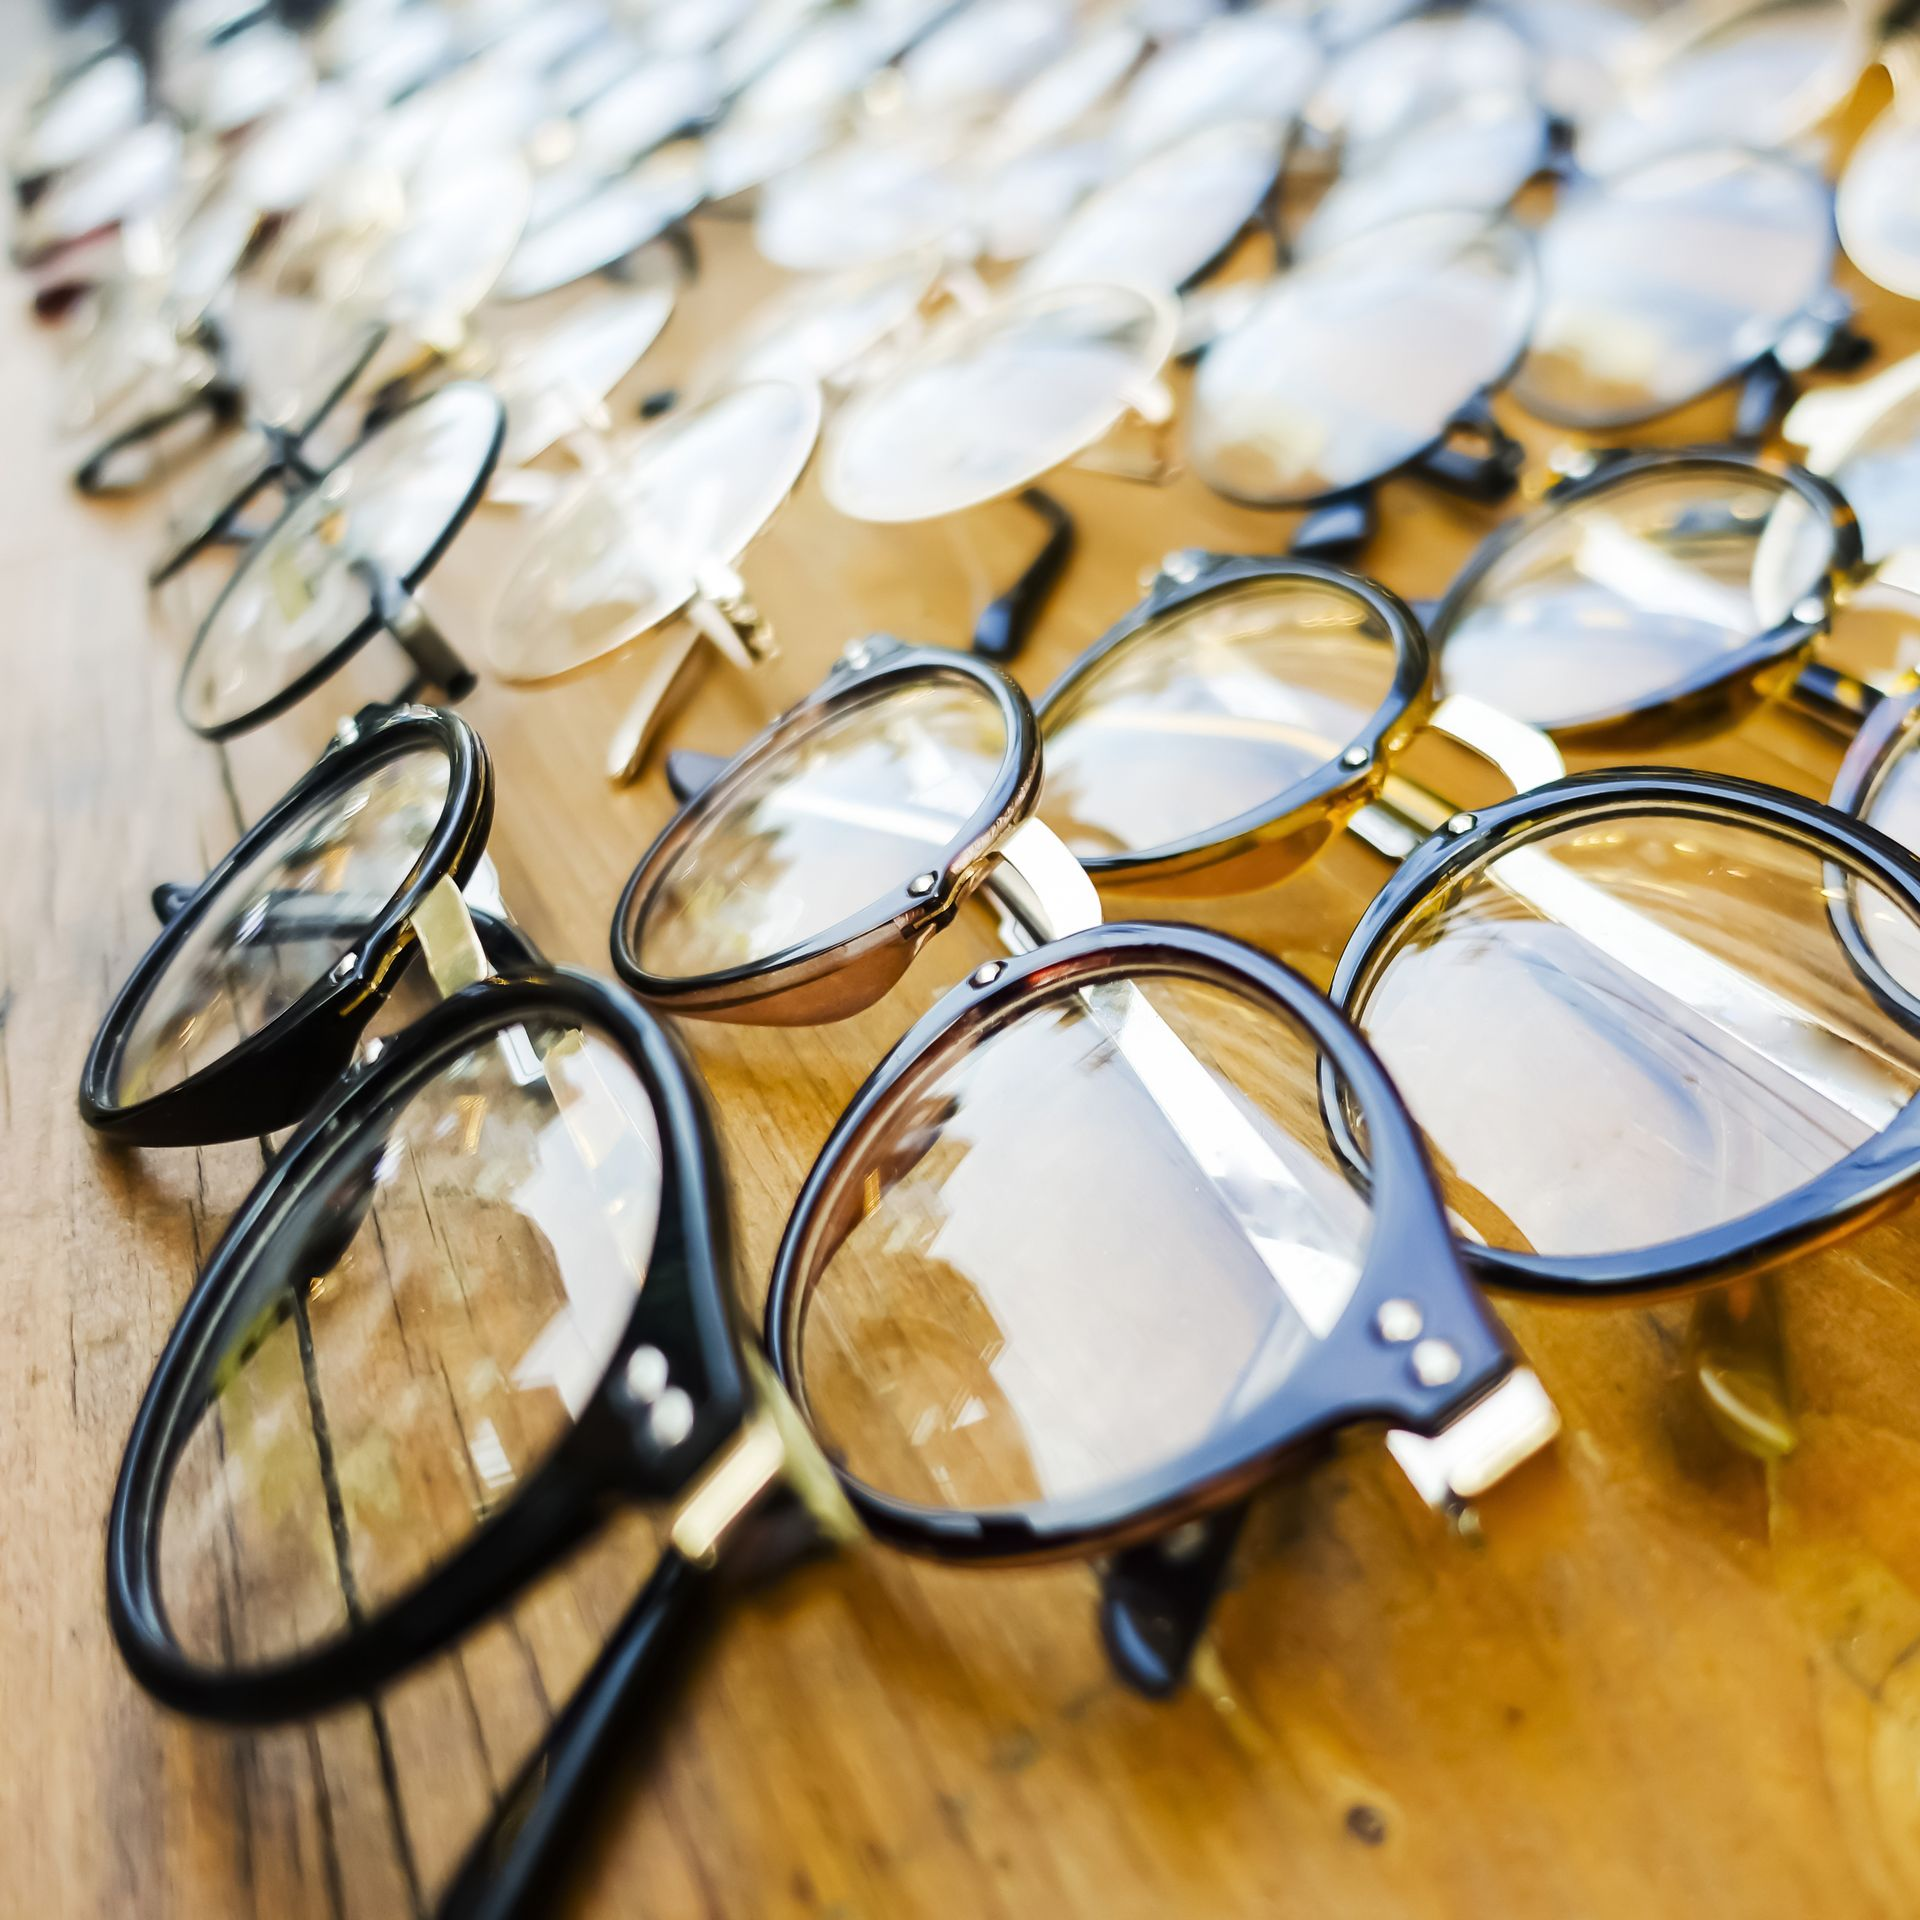 Photo of several eyeglasses frames displayed on a wooden surface